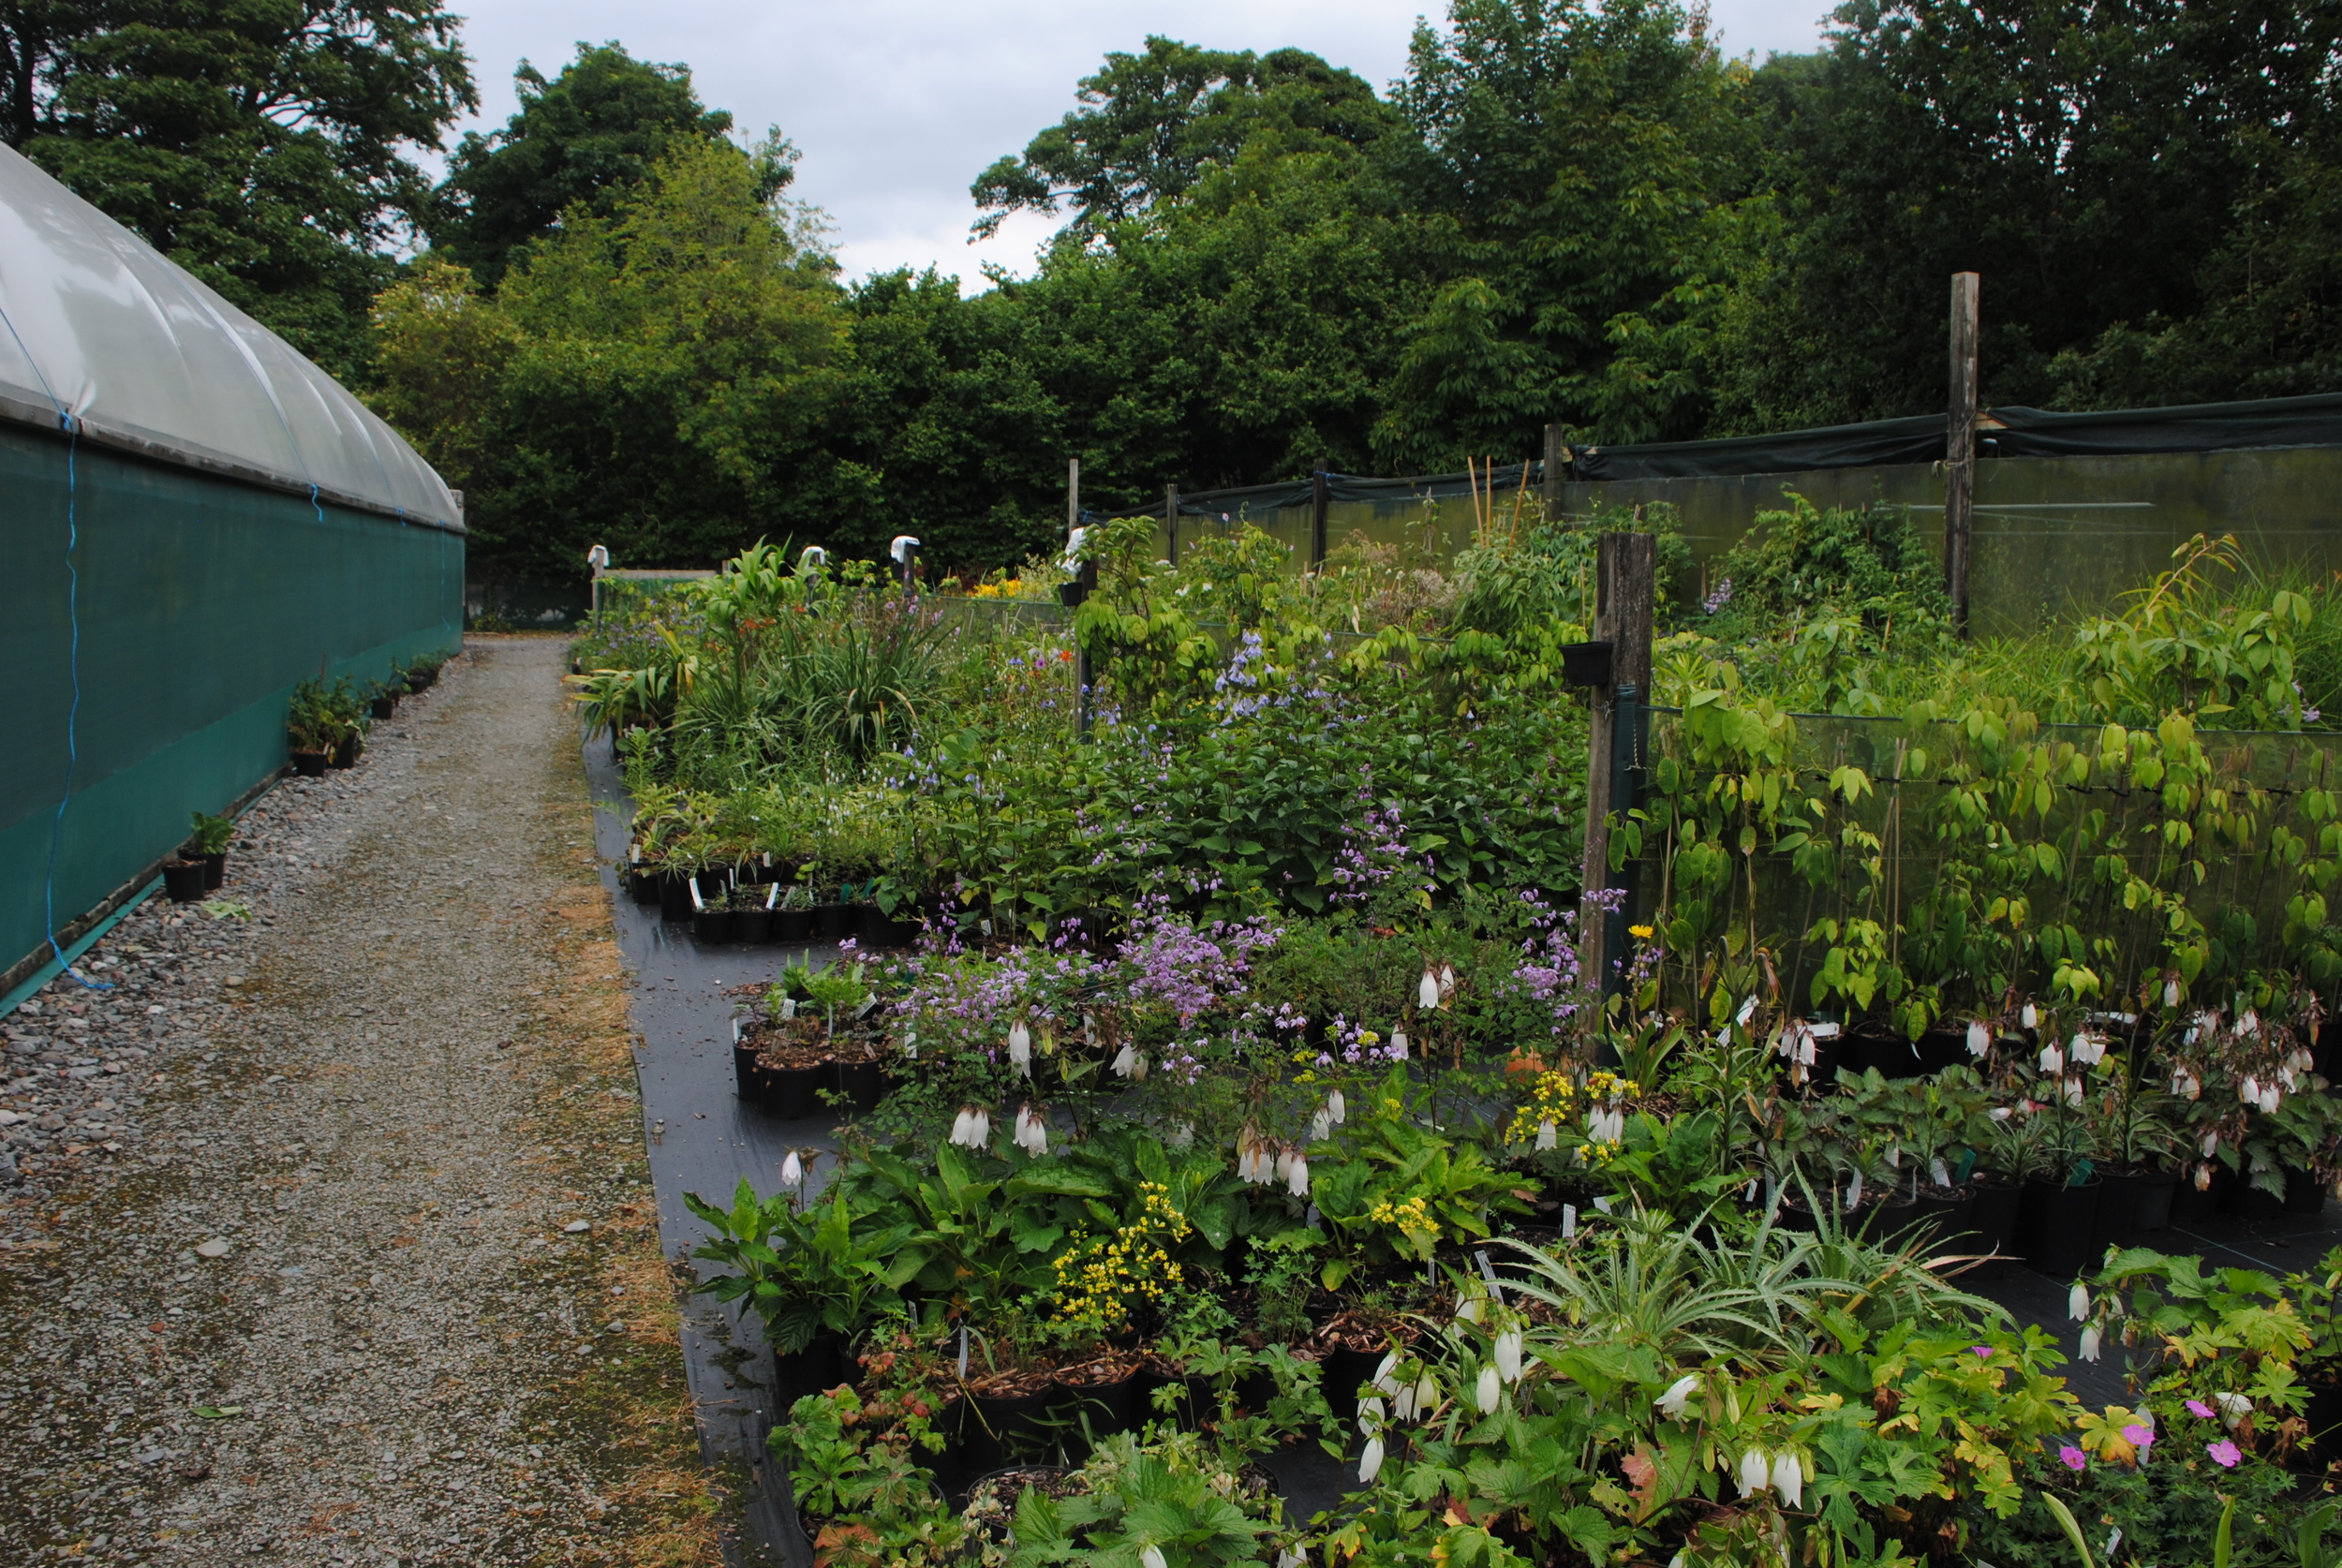 Part of the nursery where liners and herbaceous plants are grown.